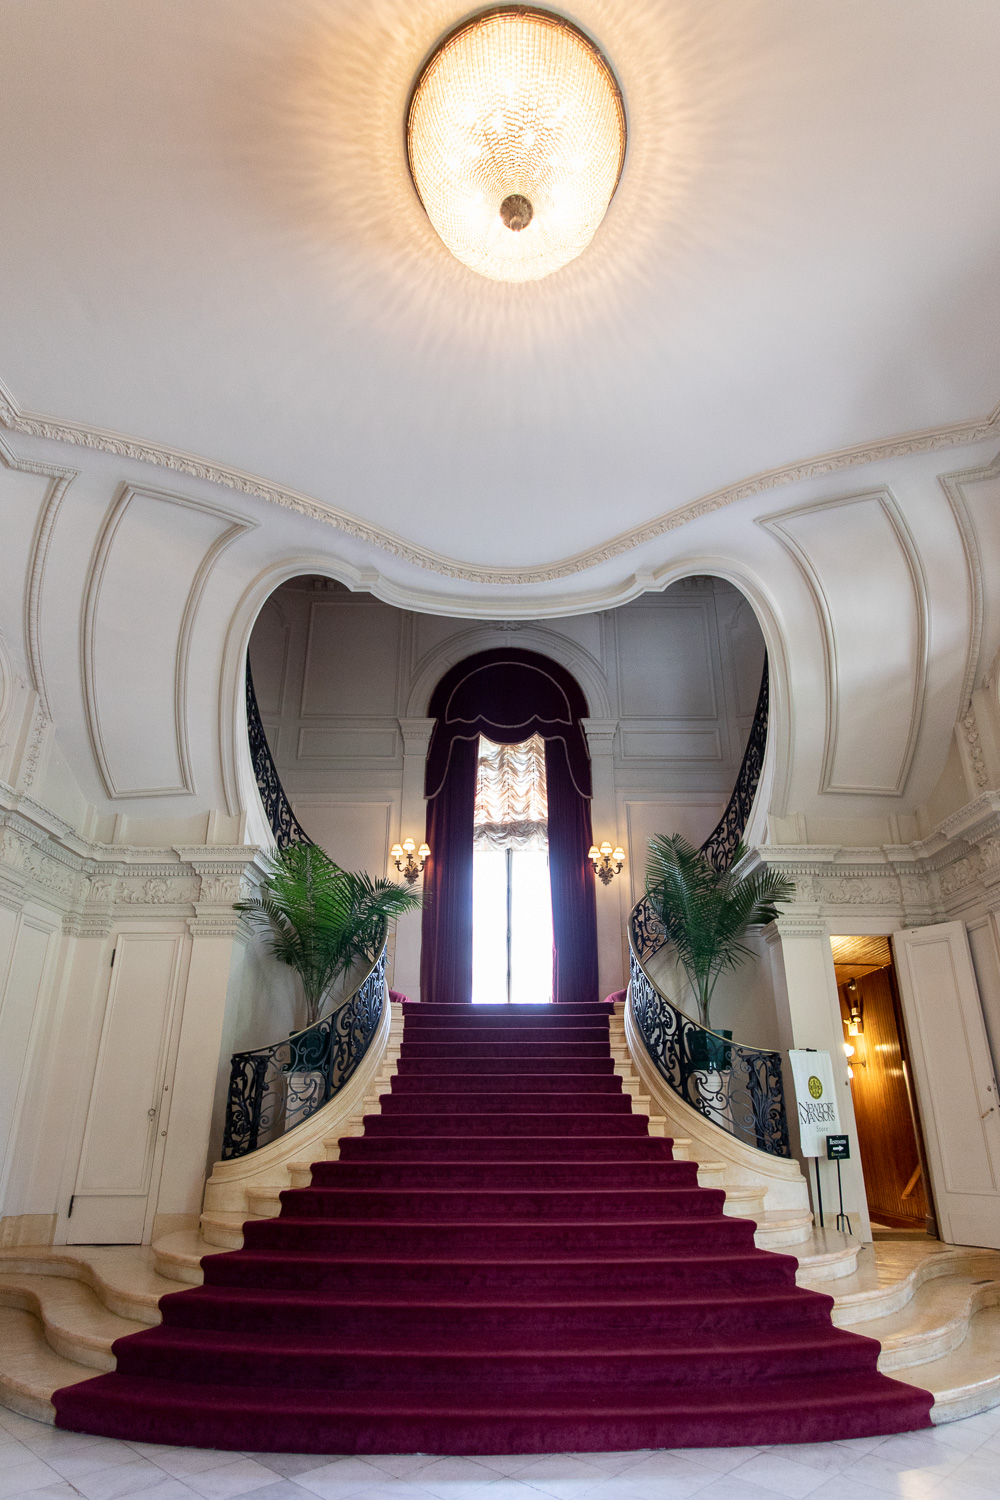 Visiting The Rosecliff Mansion In Newport Ri Eugene Buchko Photography